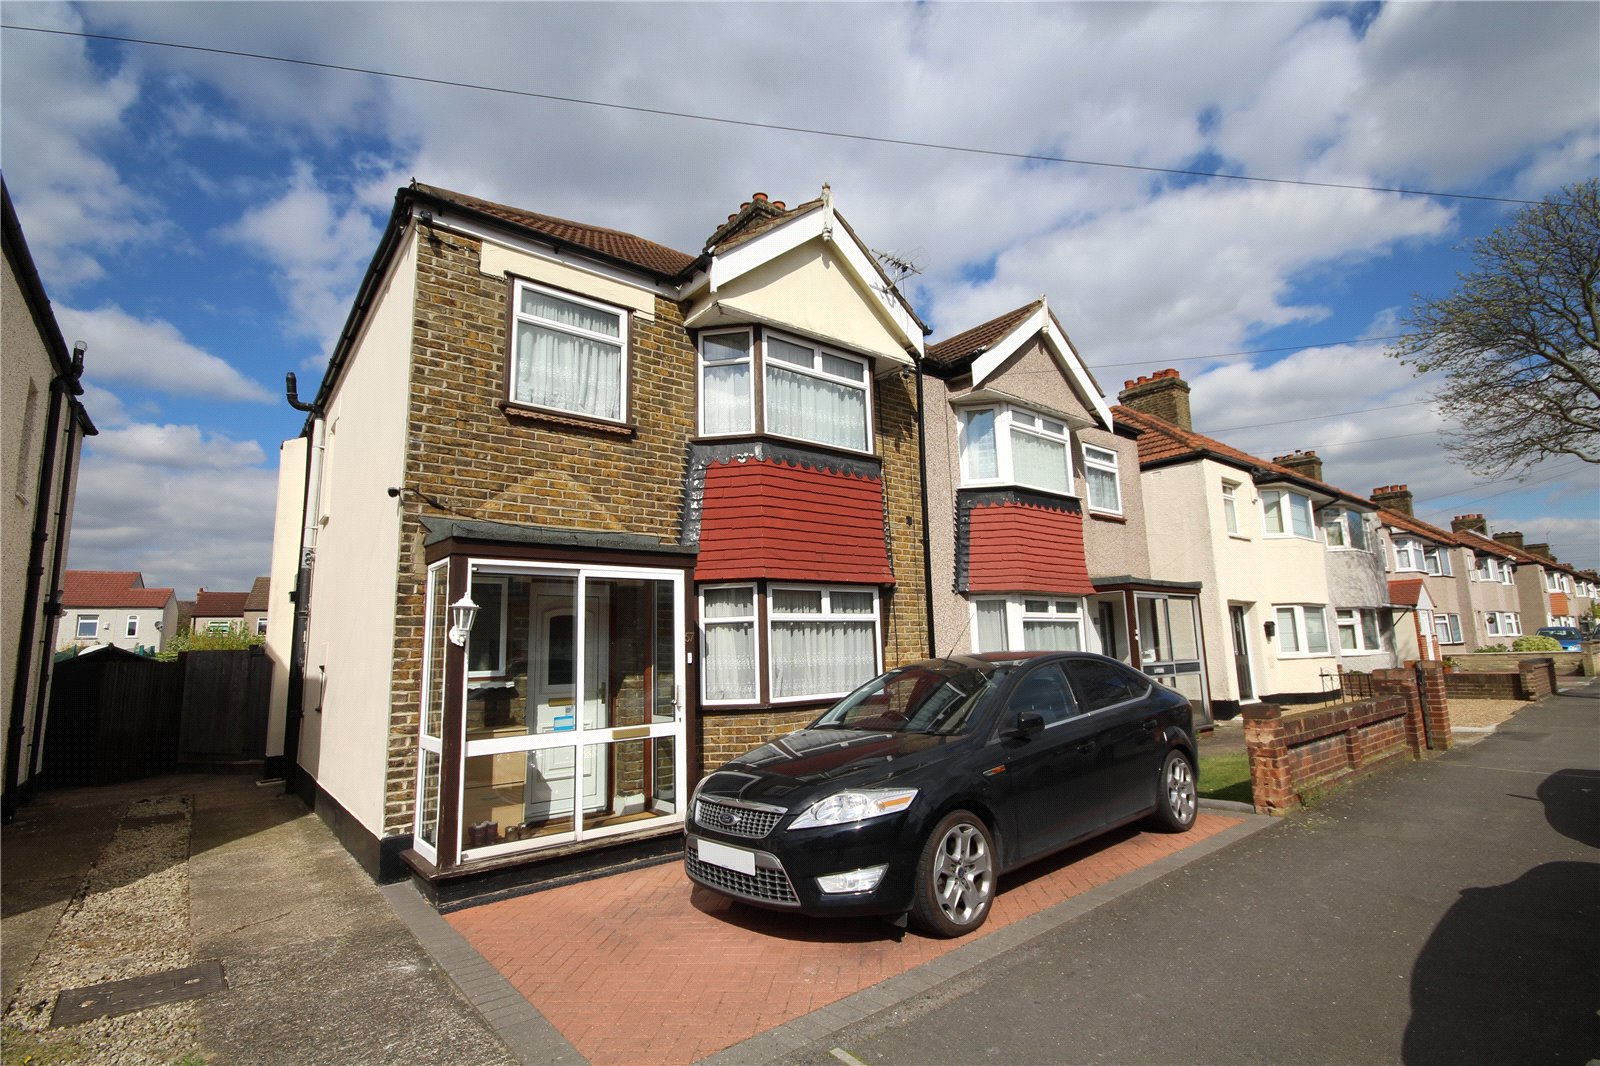 Northdown Road, Welling, Kent, DA16